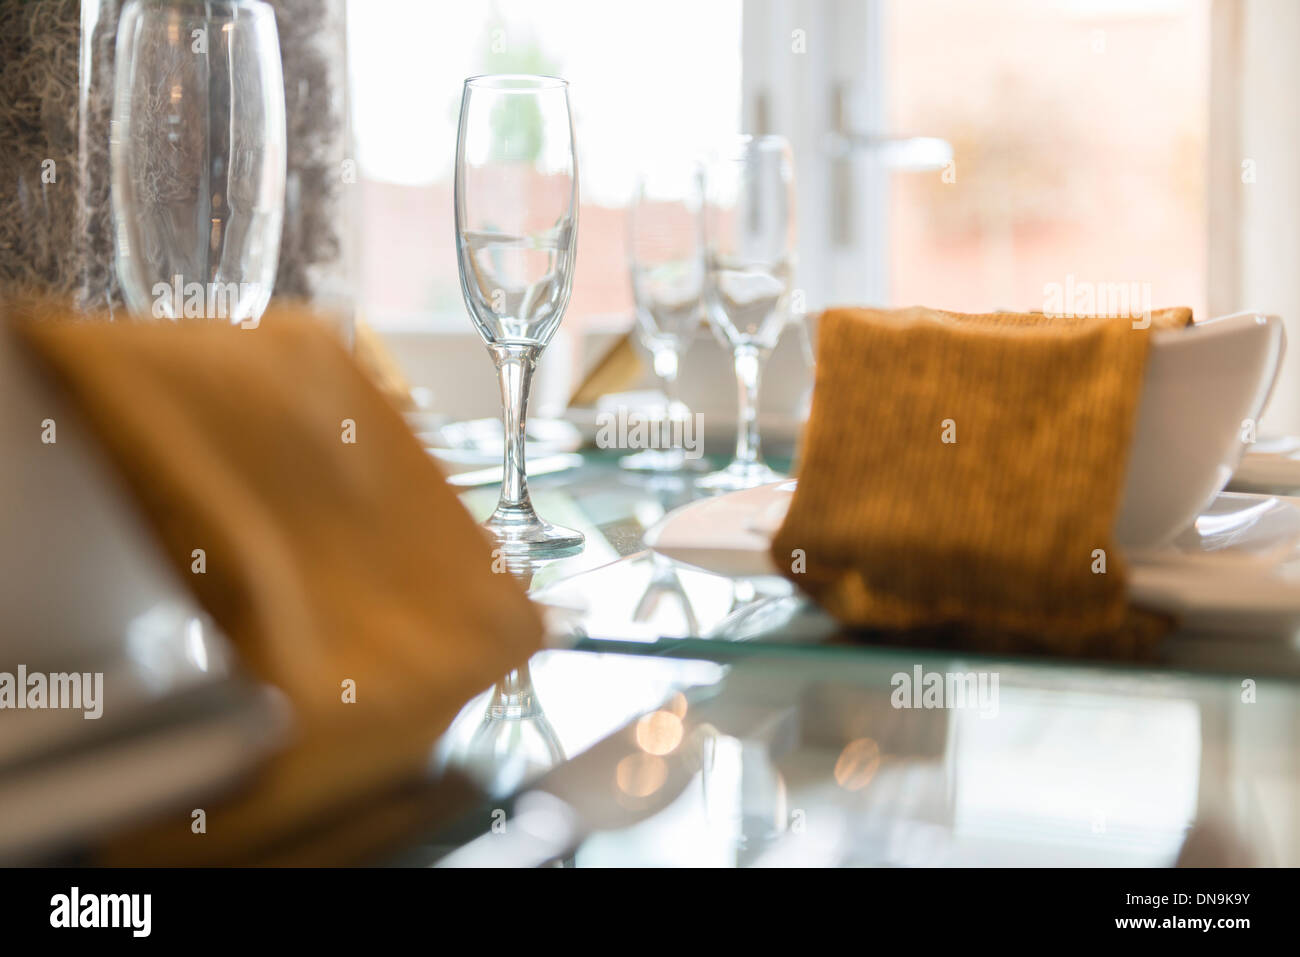 A kitchen with glasses laid on a table - Stock Image